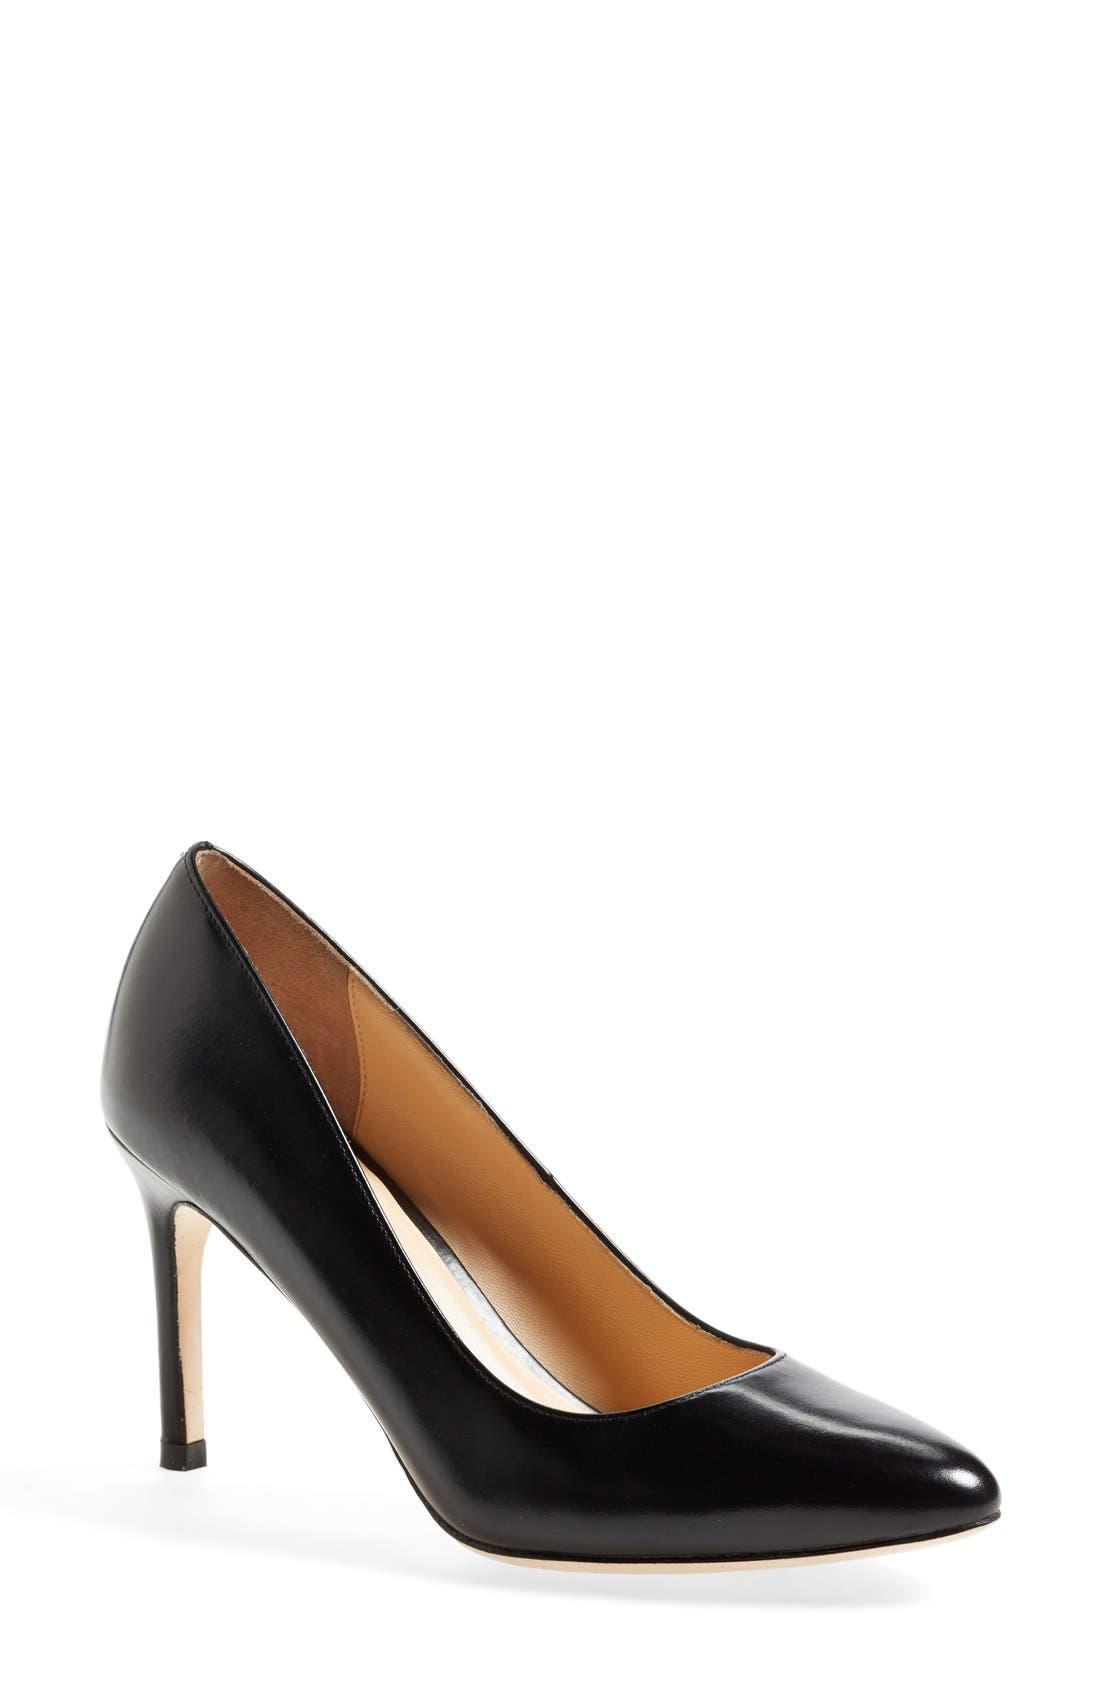 Alternate Image 1 Selected - Cole Haan 'Bethany' Leather Pump (Women)